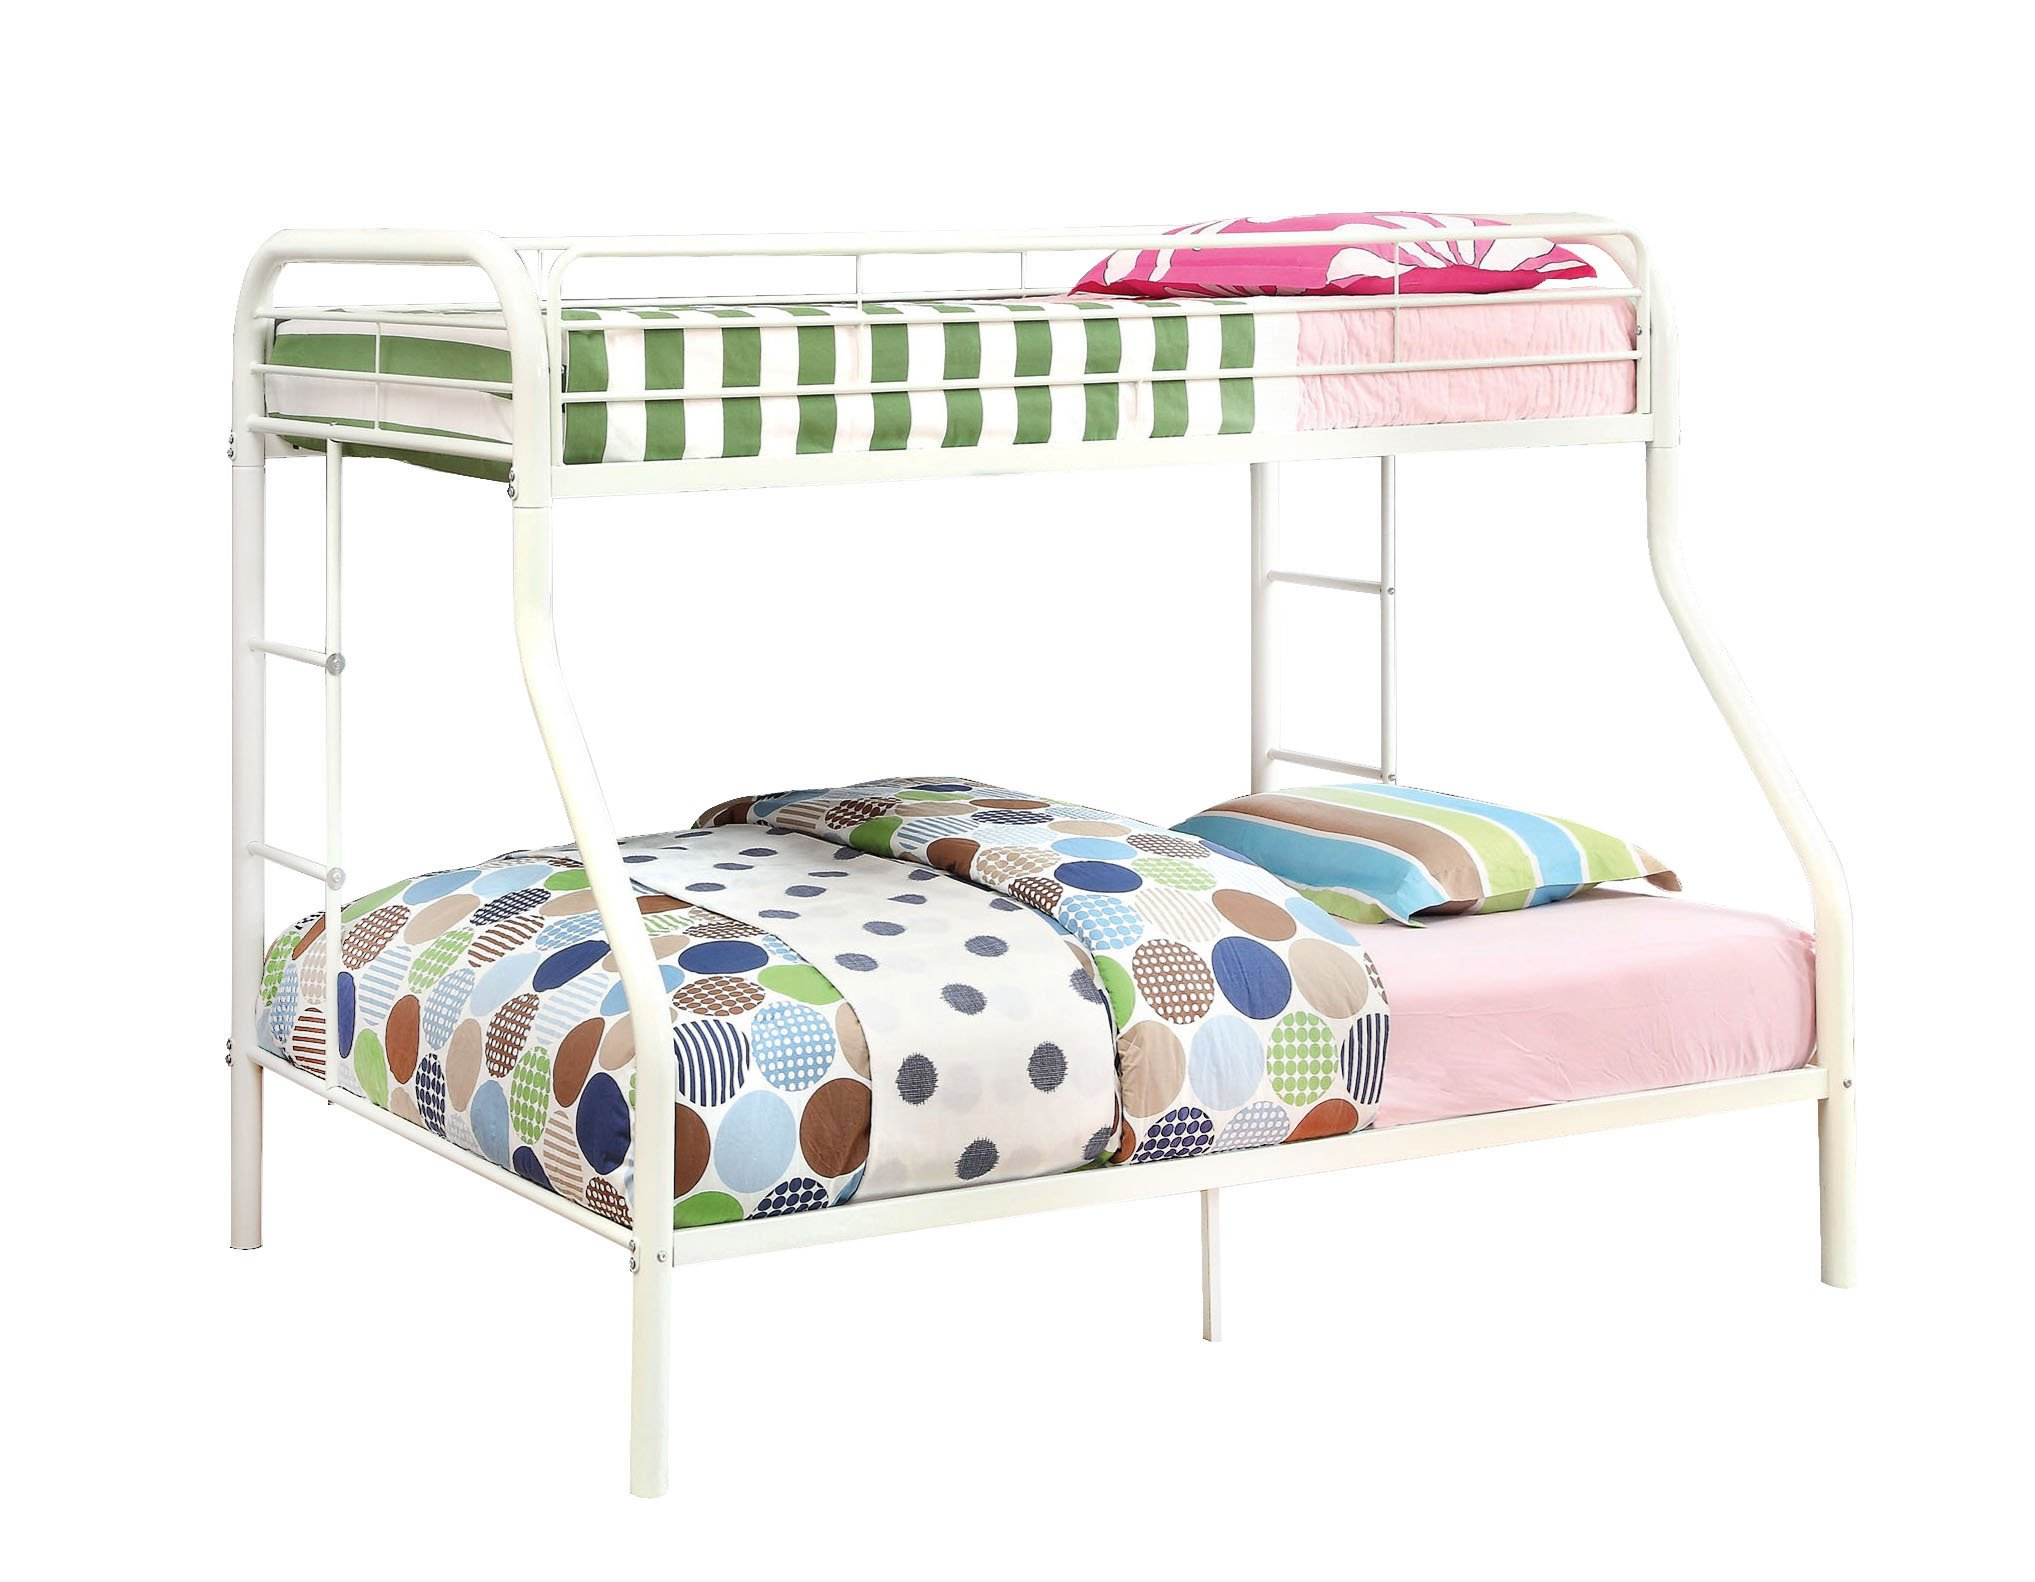 Furniture of America Non-Recycled Metal Bunk Bed, Twin Over Full, White